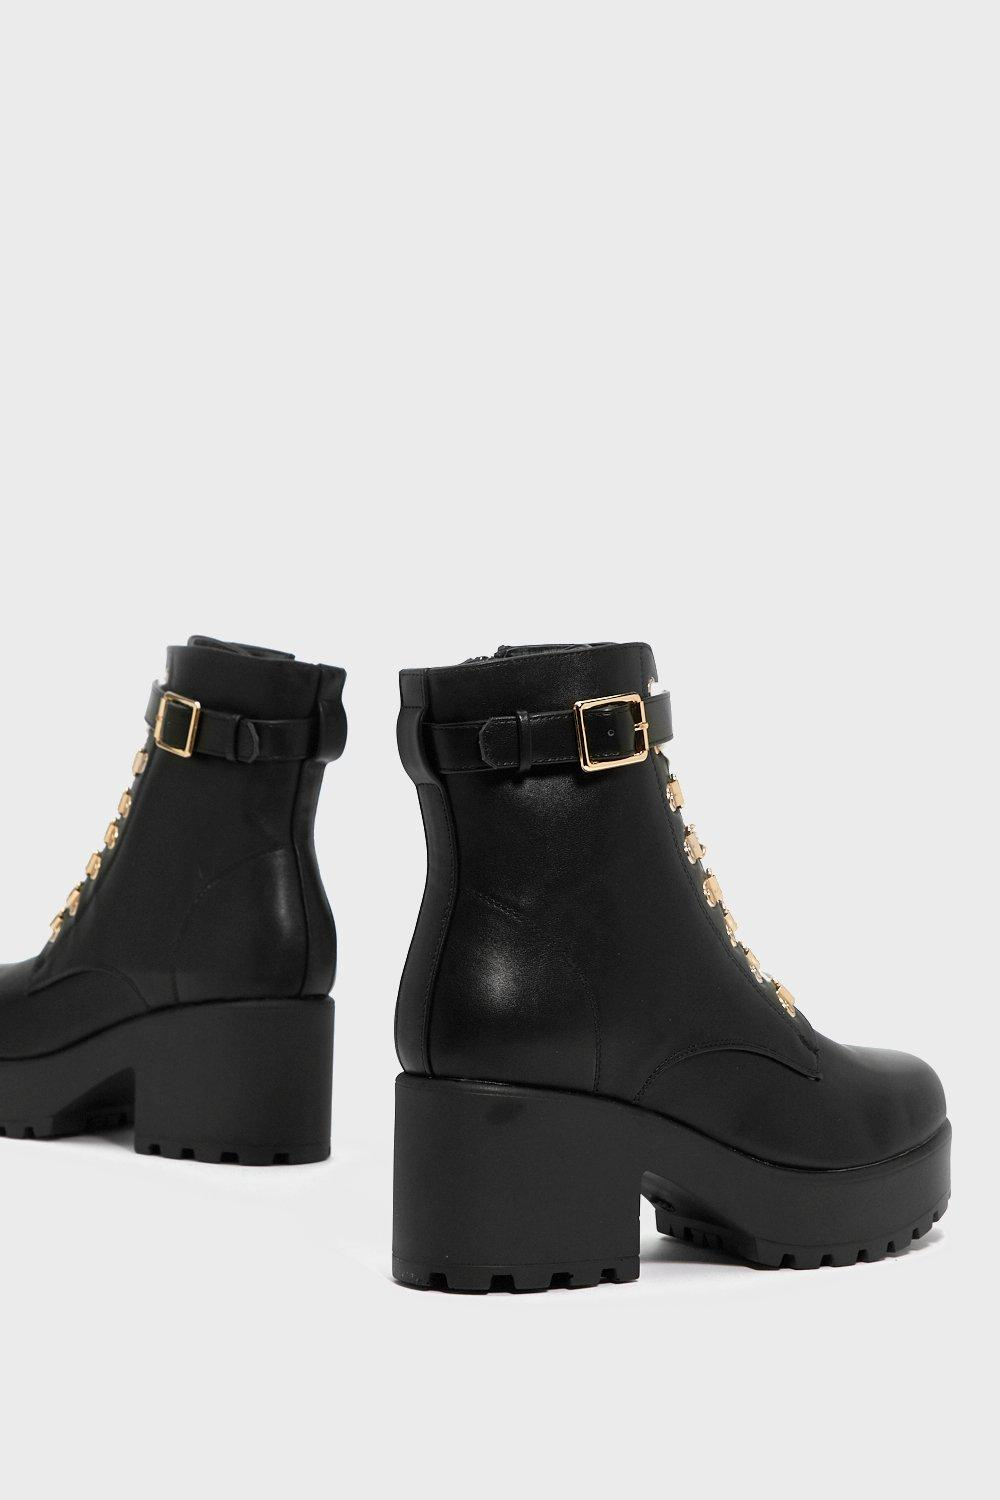 Give 'Em the Boot Chunky Boot buy cheap for cheap cheap sale sast buy cheap view vPZMRu